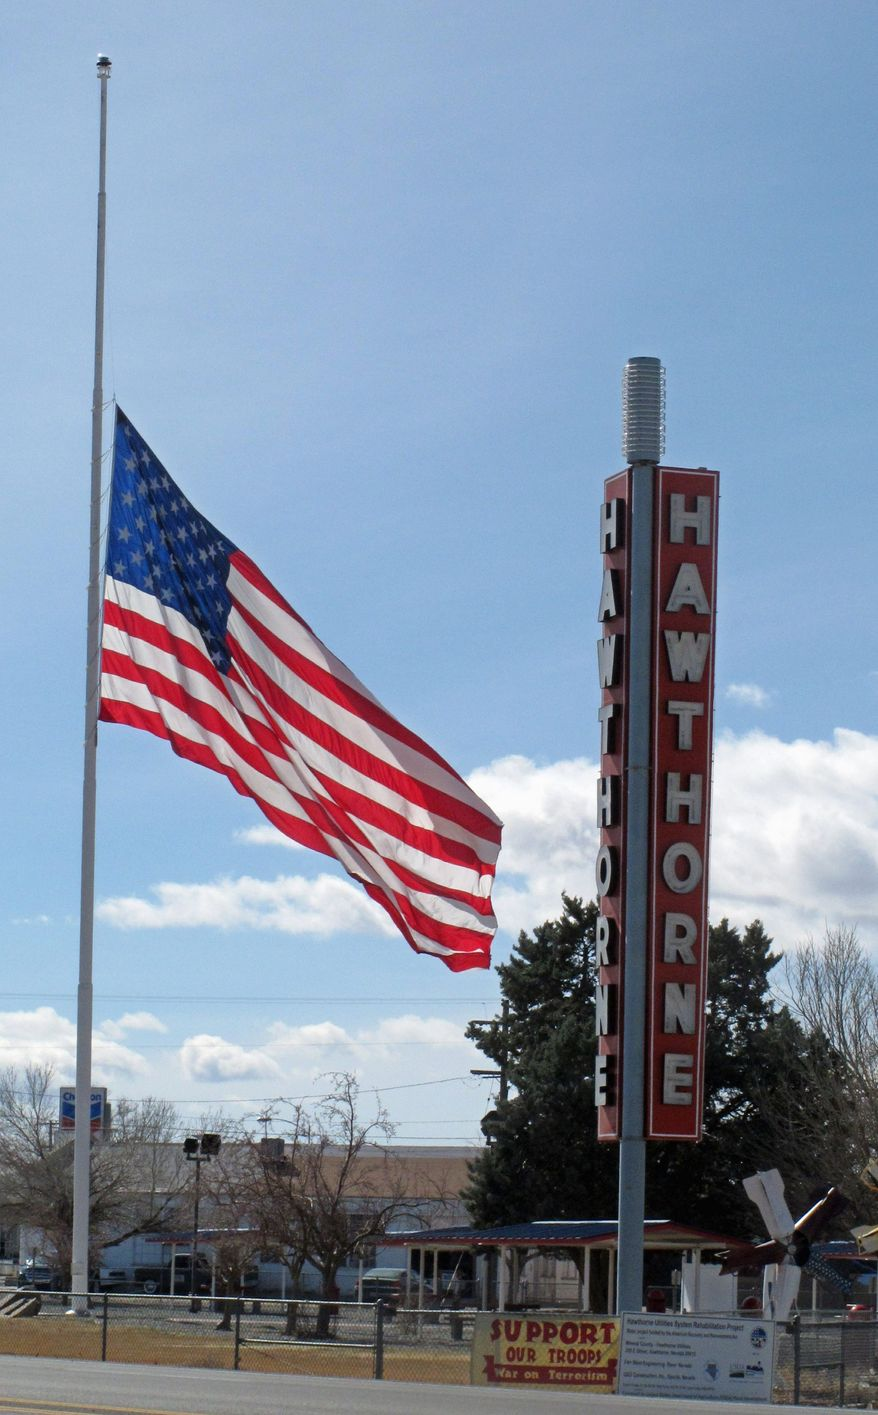 An American flag waves at half staff in Hawthorne, Calif., not far from the Army depot where seven Marines were killed and others seriously injured late Monday when a 60 mm mortar exploded during a training exercise. The Pentagon suspended use of the mortars until a review is complete. (Associated Press)